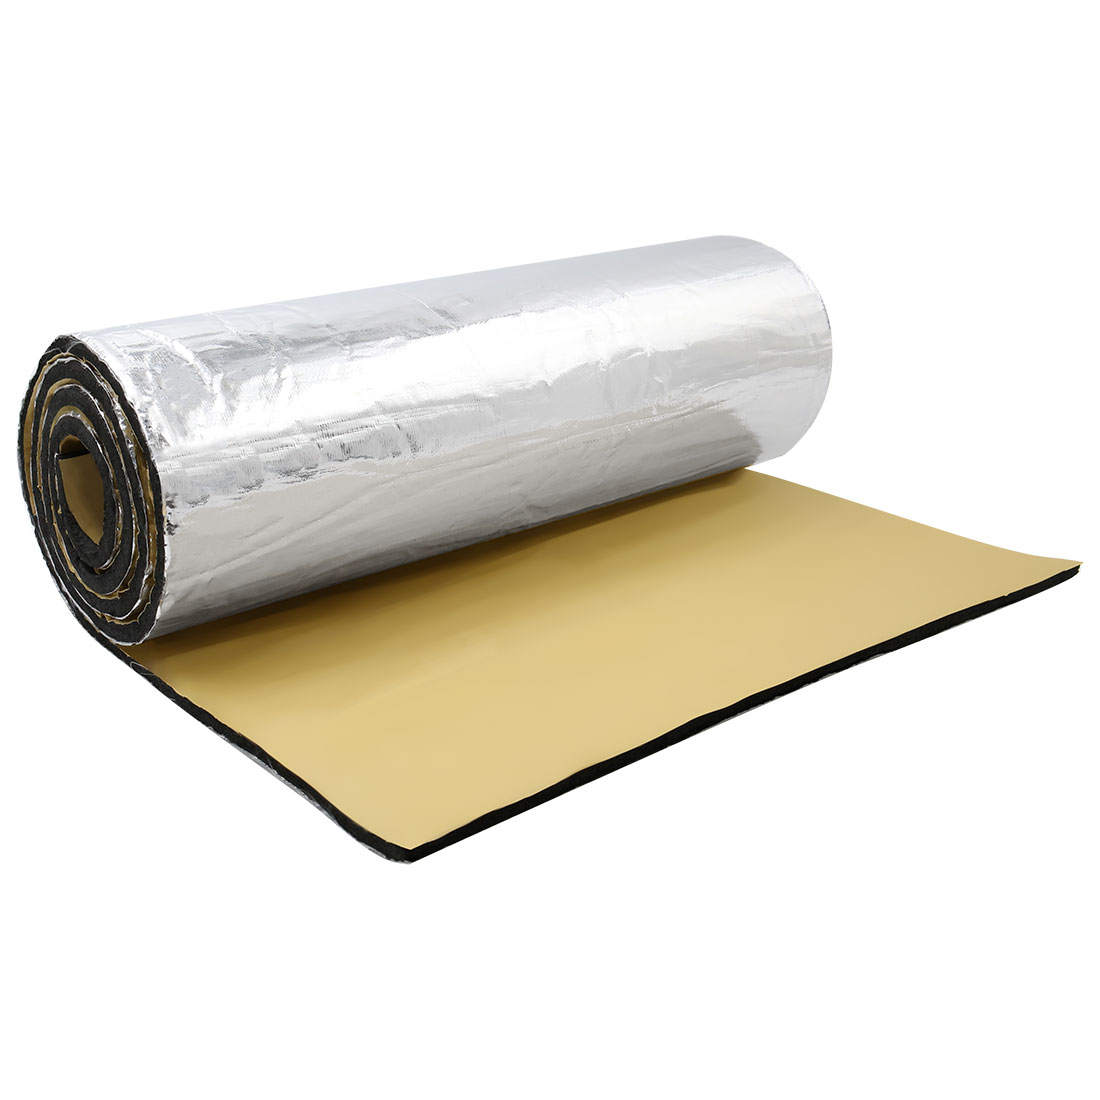 197mil 5mm 6.46sqft Car Heat Sound Deadener Dampening Thicker Aluminum Foam Mat